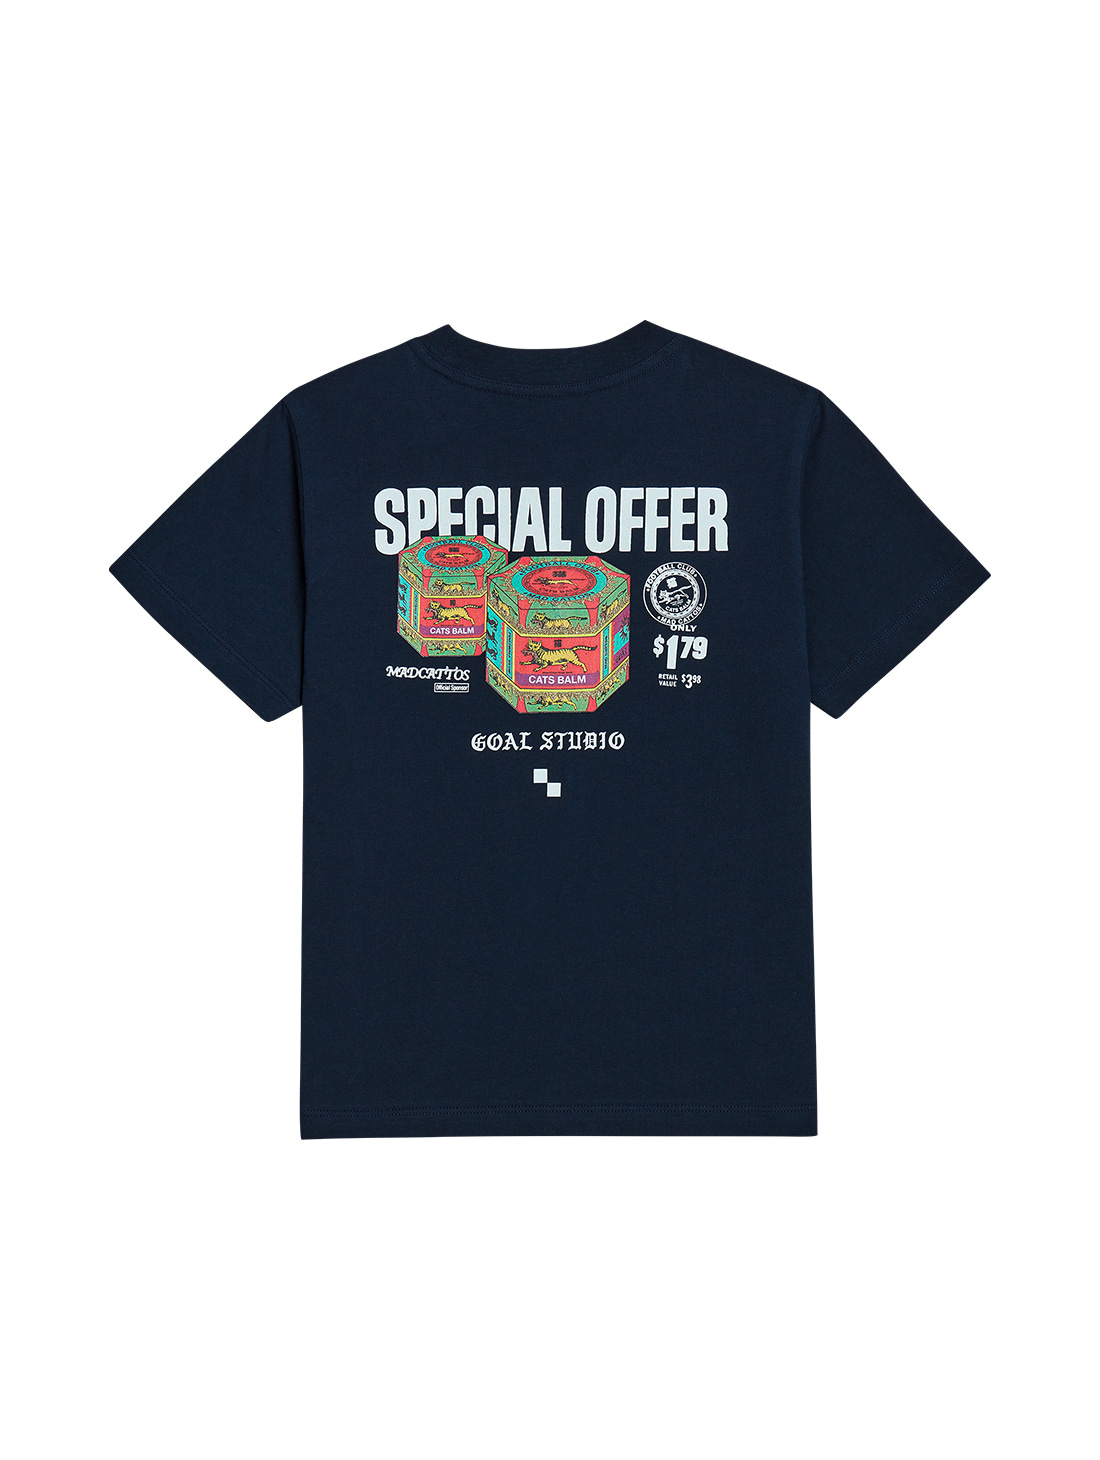 GOALSTUDIO (KIDS) MC BALM GRAPHIC TEE - NAVY